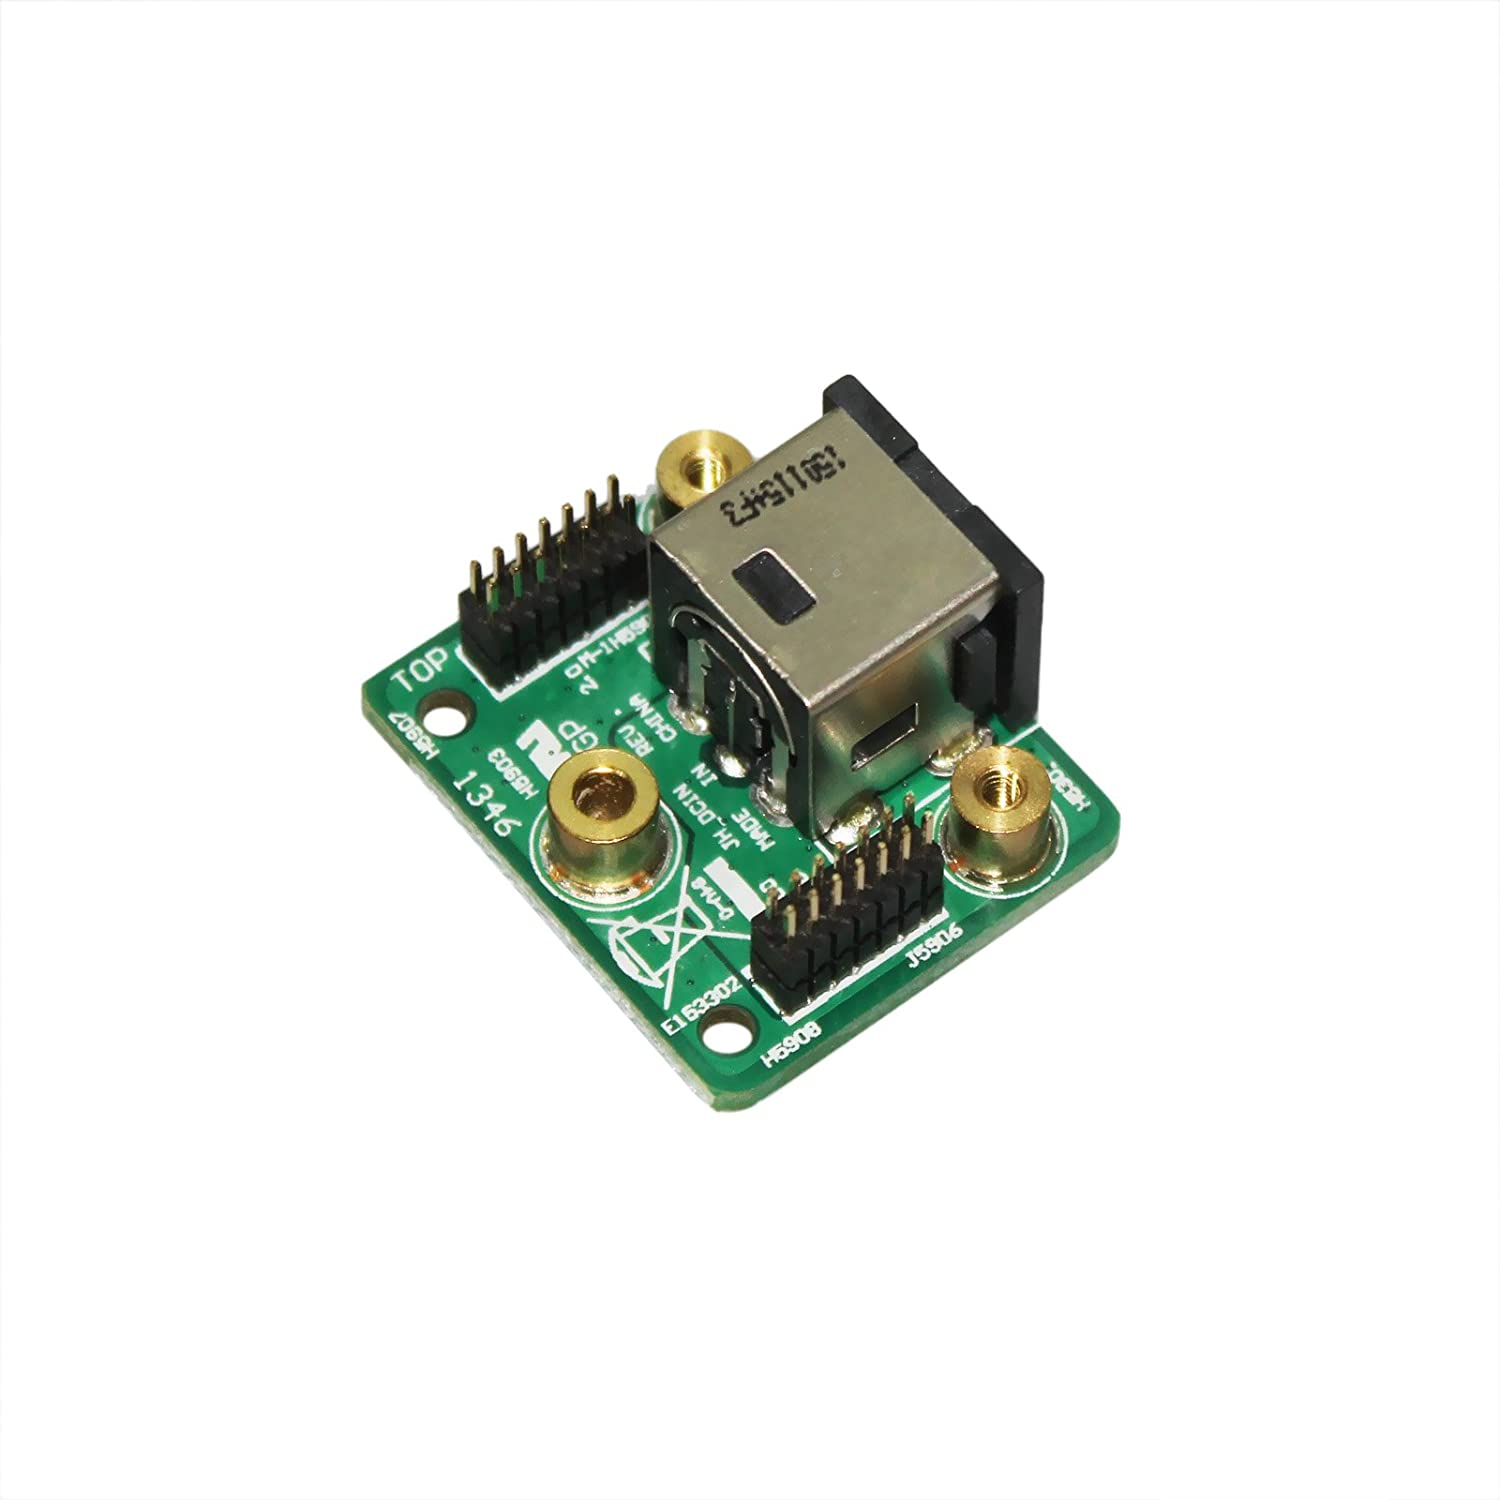 Zahara DC Jack Power in Board Replacement for Asus ROG 60NB04K0-DC1020 2014